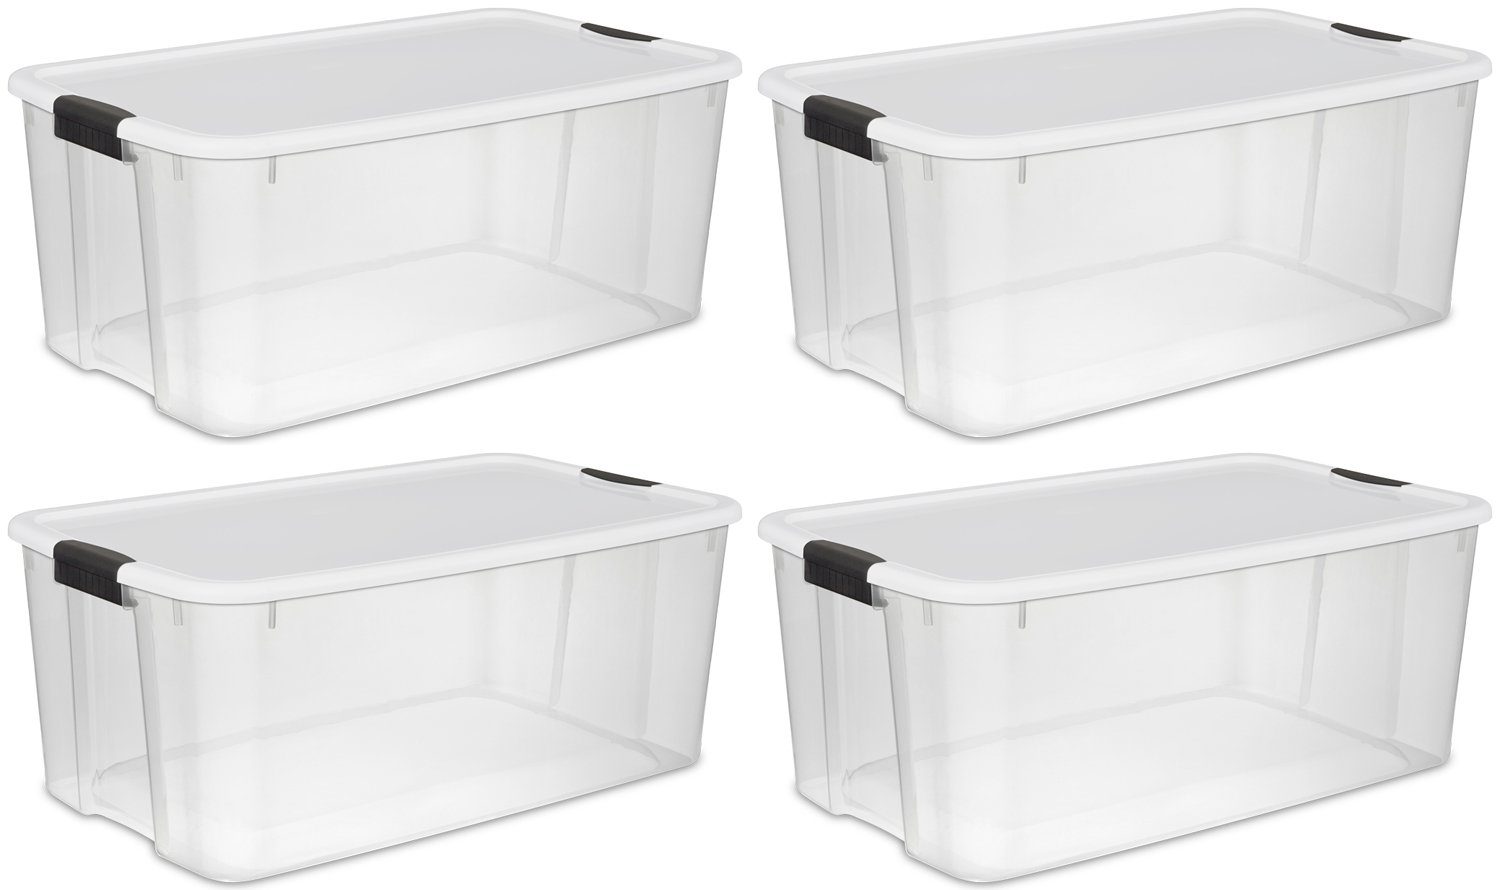 Sterilite 19909804 116 Quart 110 Liter Ultra Latch Box Clear with a White Lid